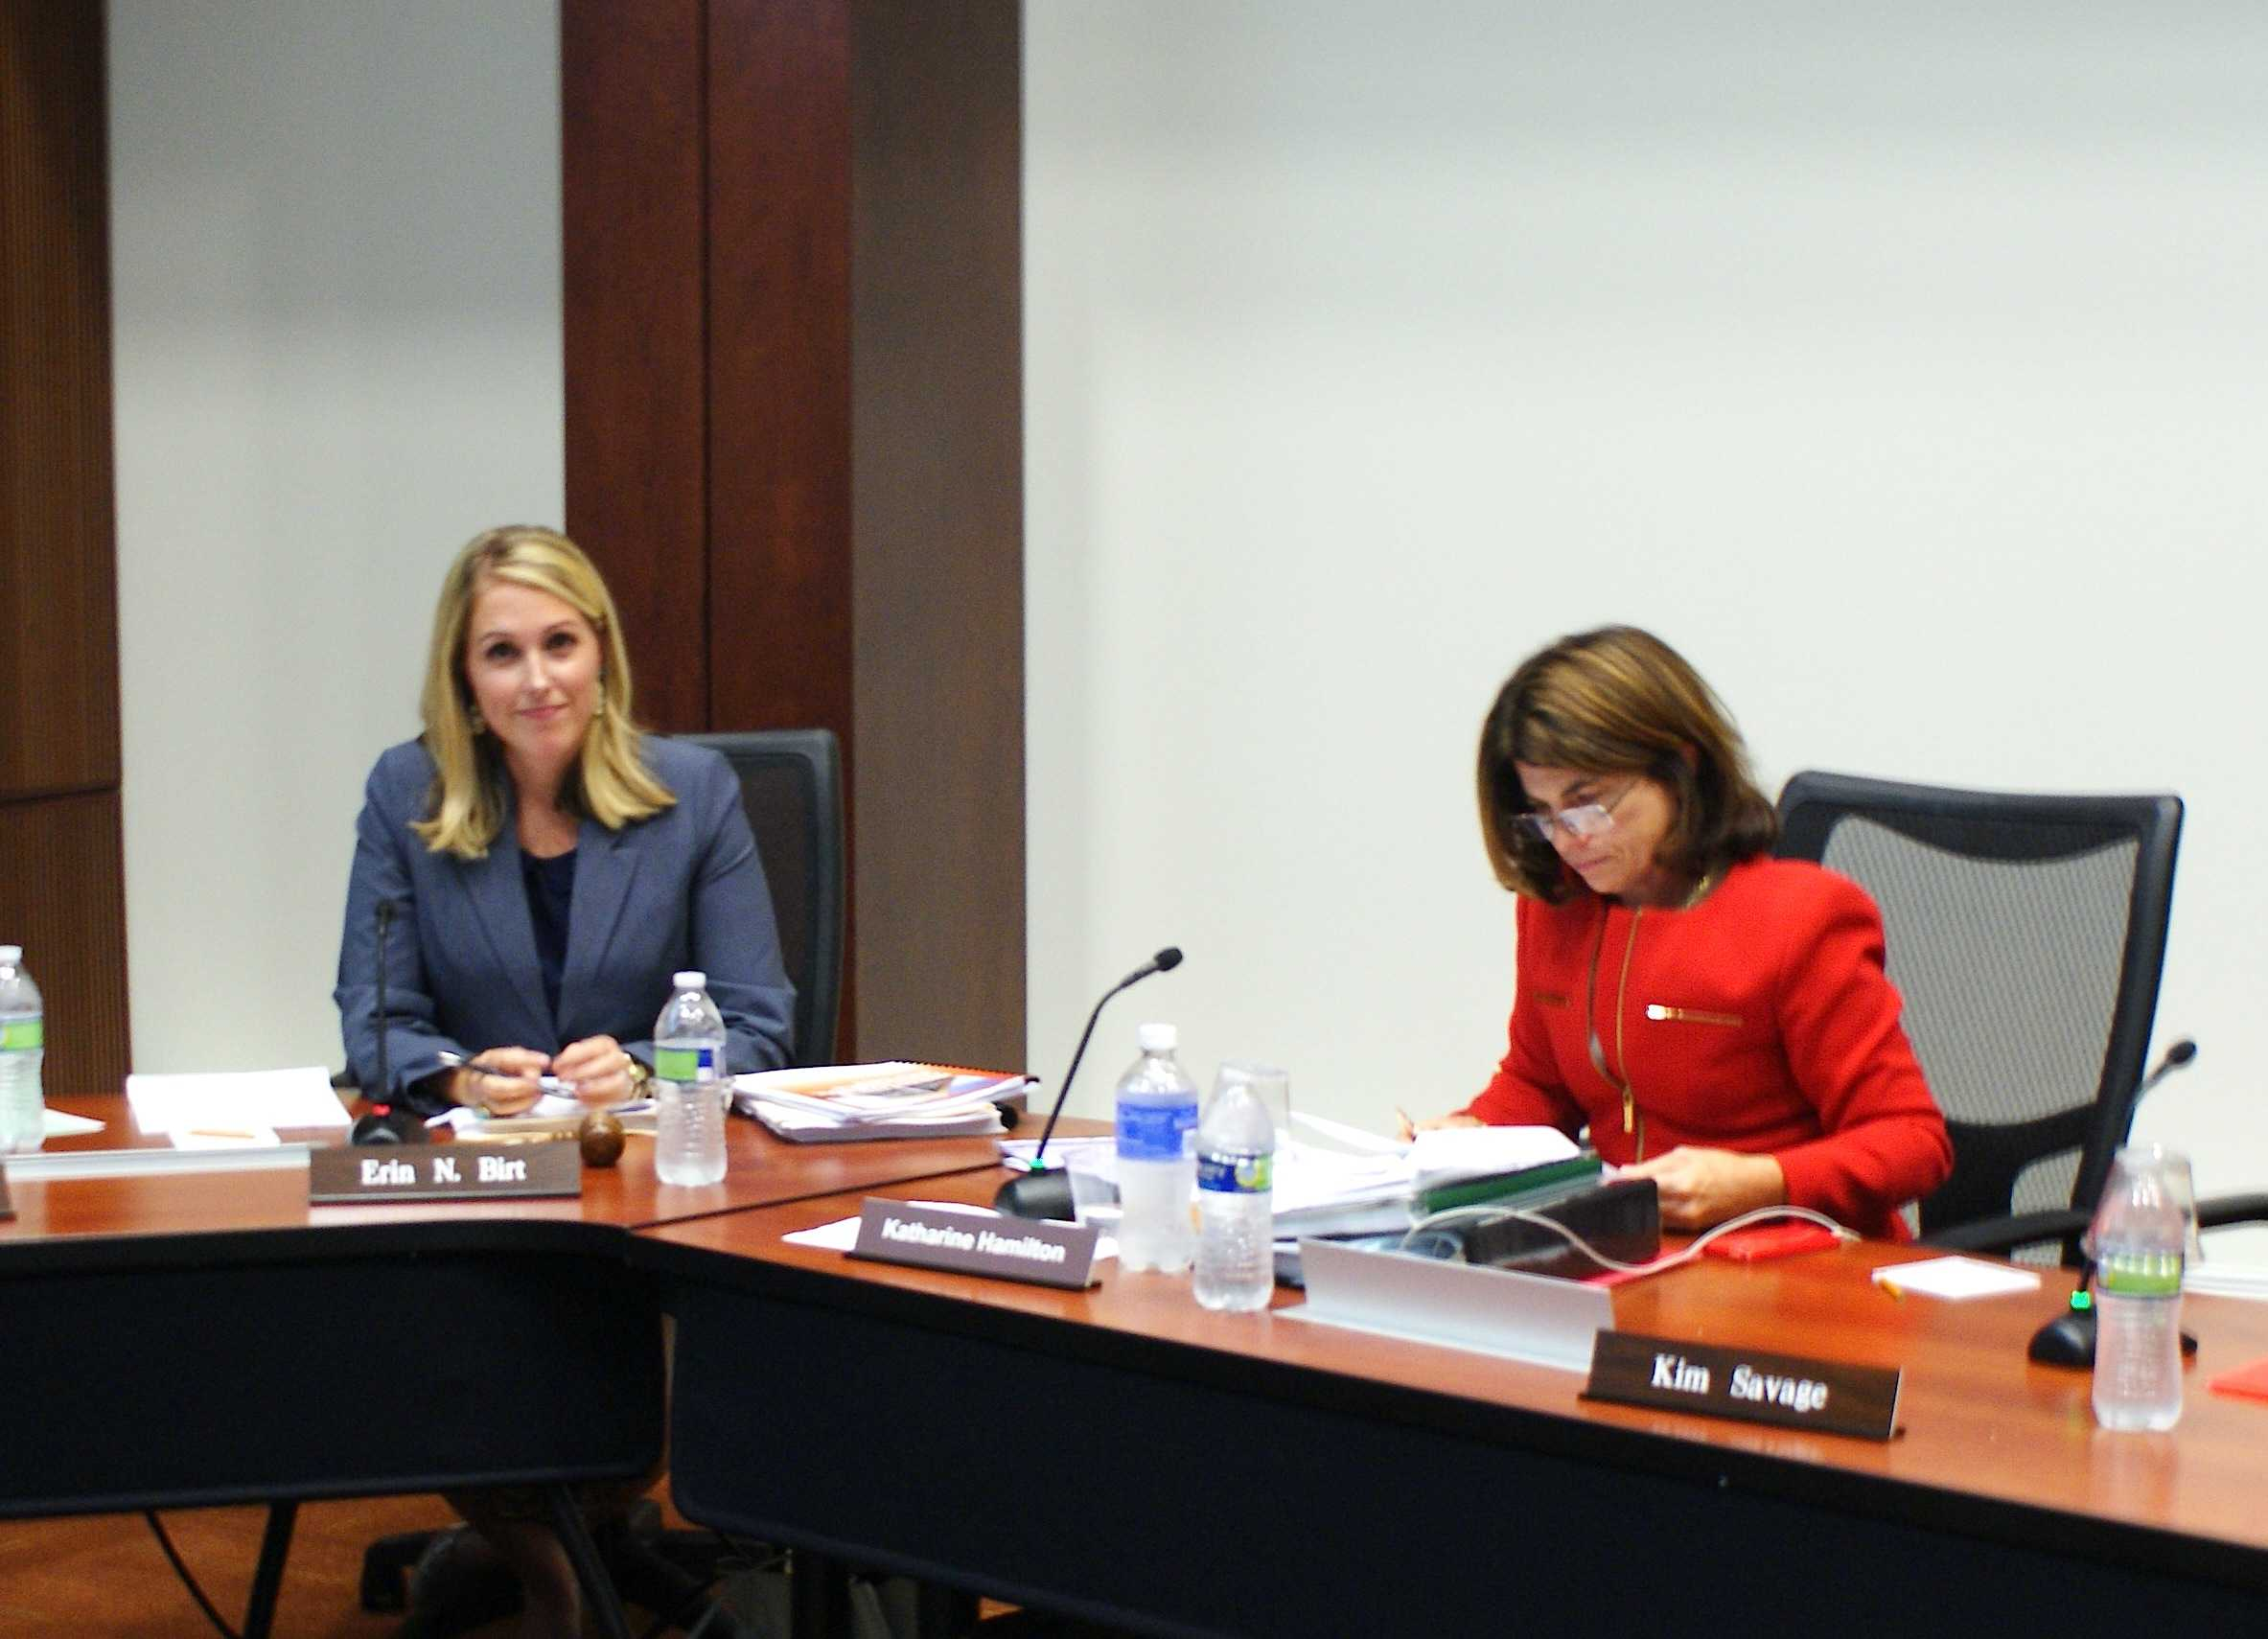 Board Chair Erin Birt, left, and Vice Chair Kathy Hamilton await the start of the College of DuPage board of trustees meeting on Aug. 21, 2014. Birt and the majority of the board voted to censure Hamilton.